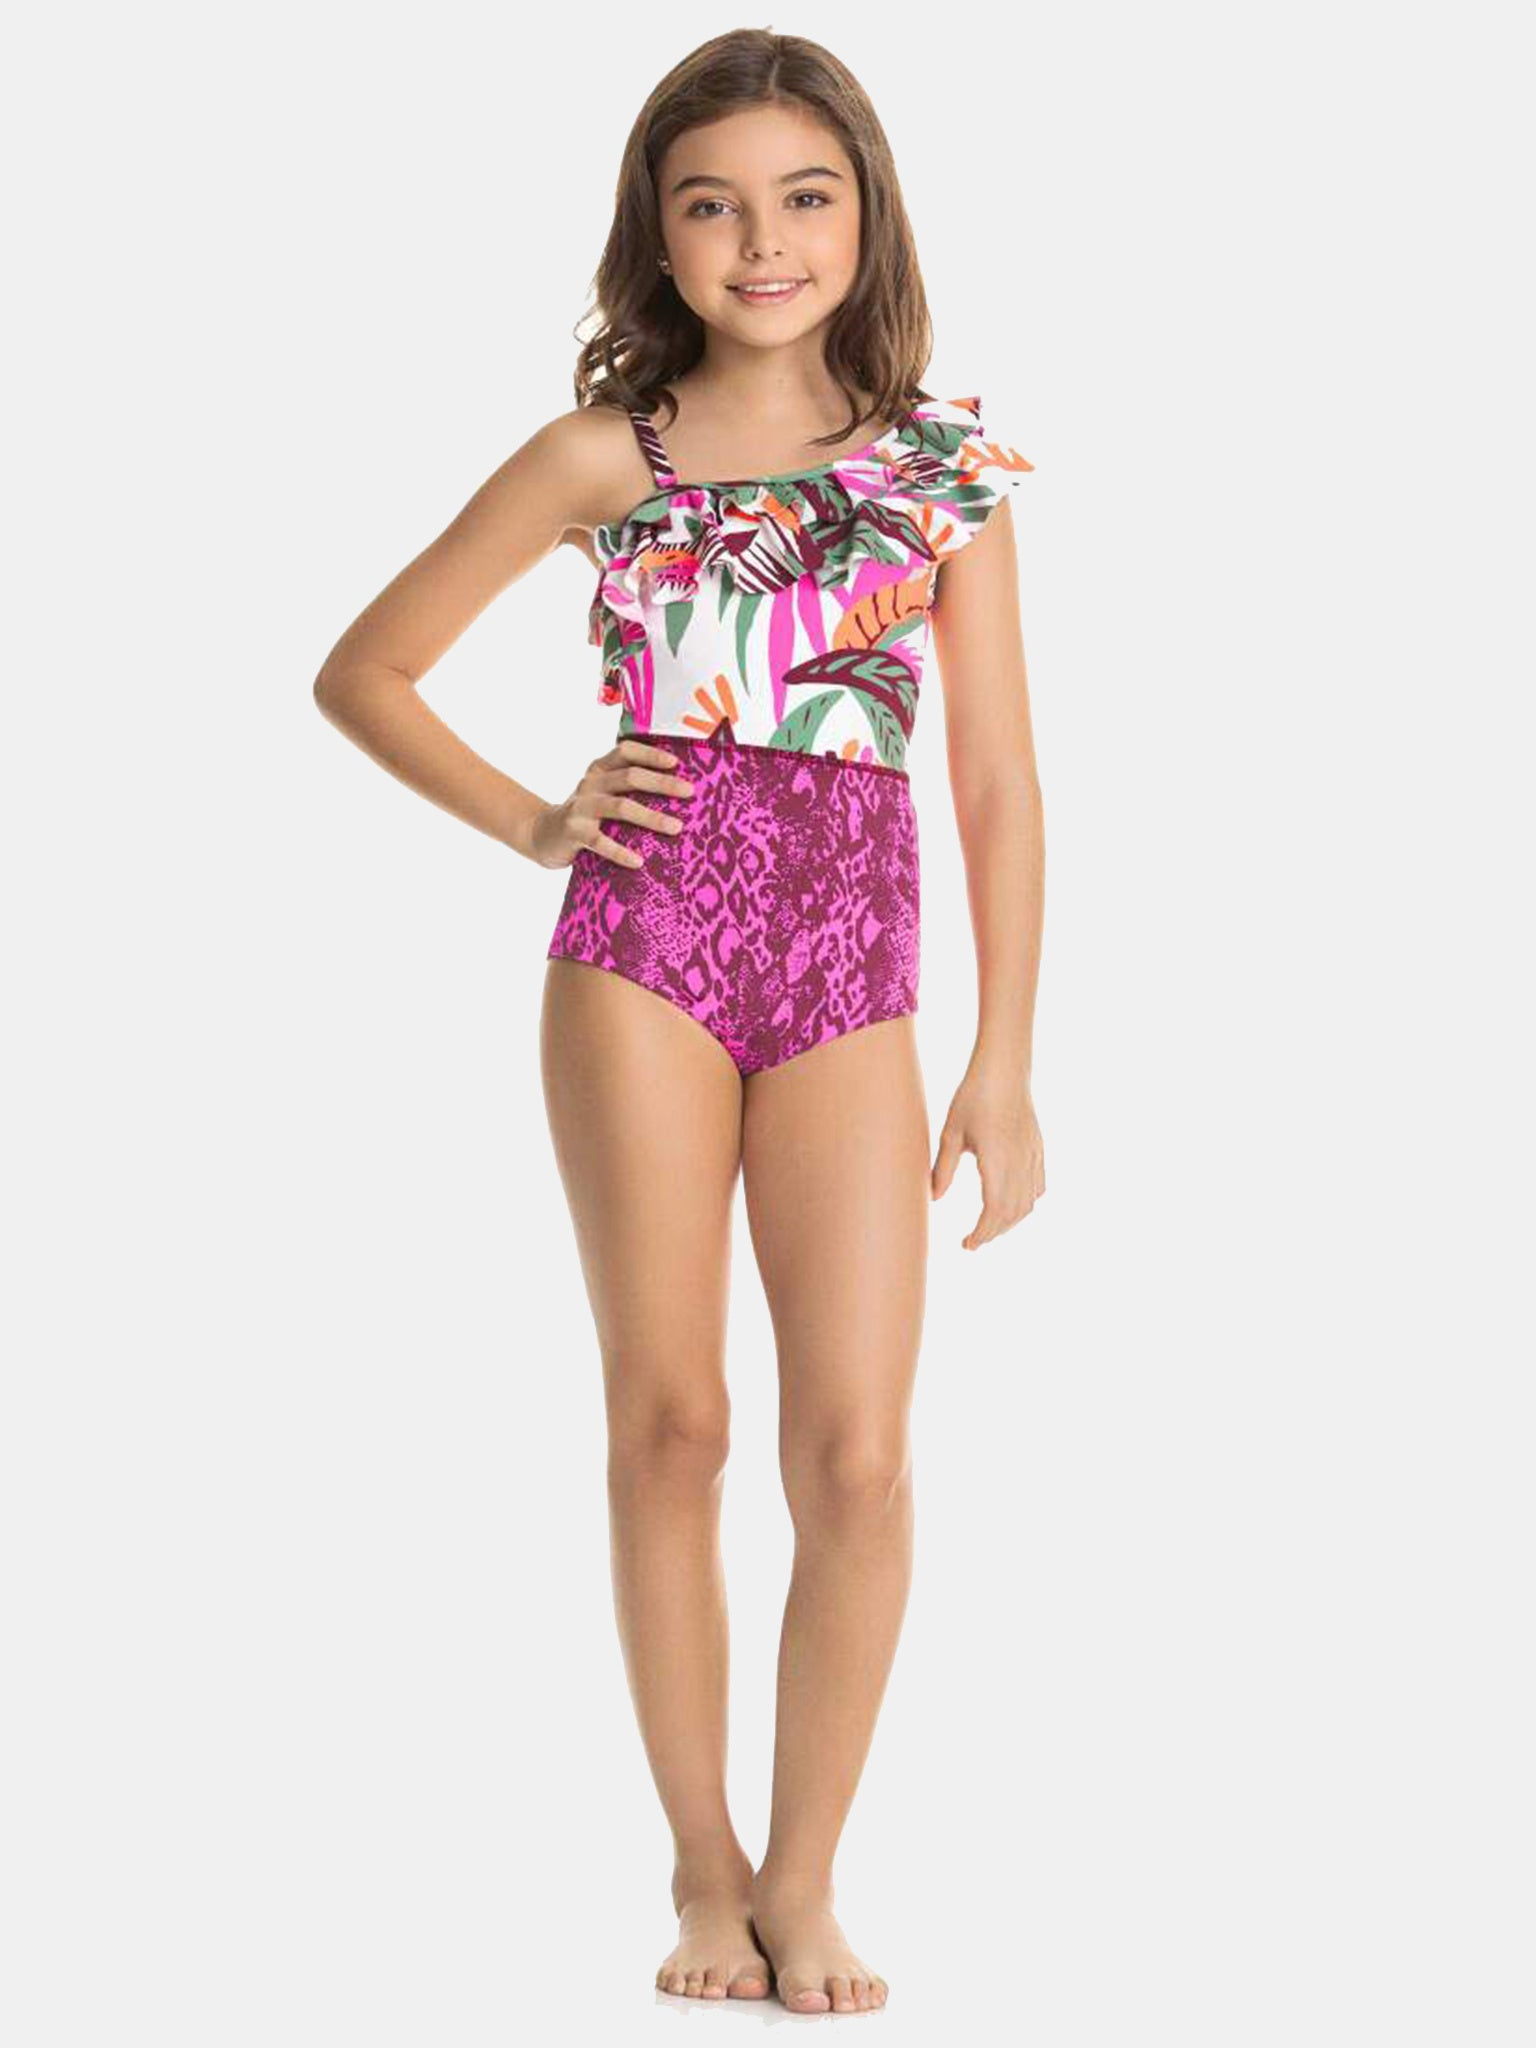 Blue Wave All-Over Print Water Marbled One Piece Youth Swimsuit Girl/'s